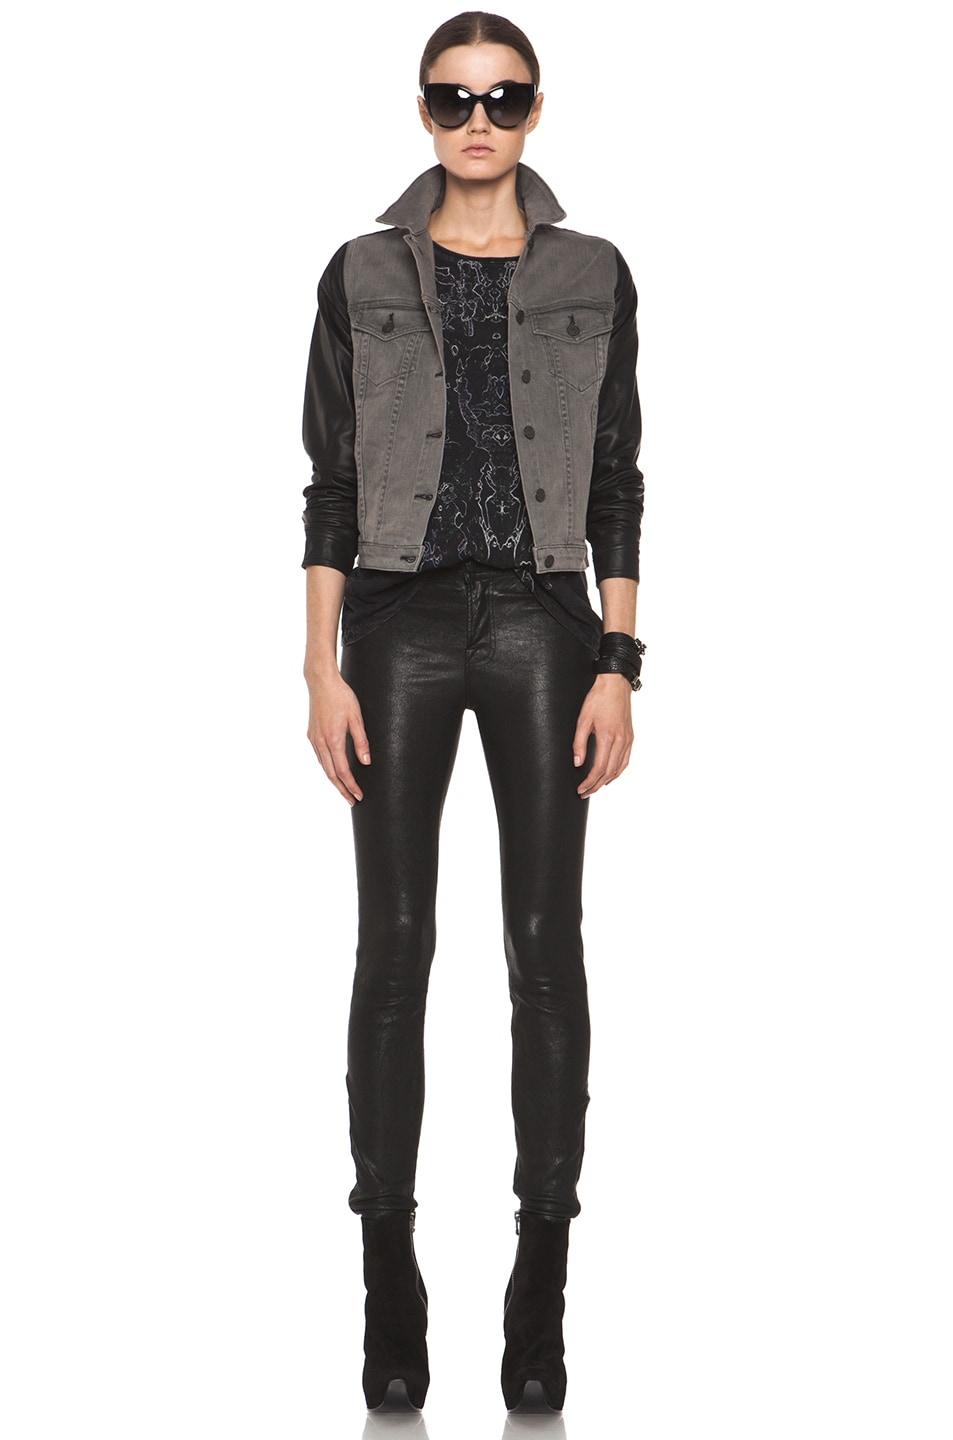 Image 5 of rag & bone JEAN Denim Jacket with Leather Sleeves in Iron